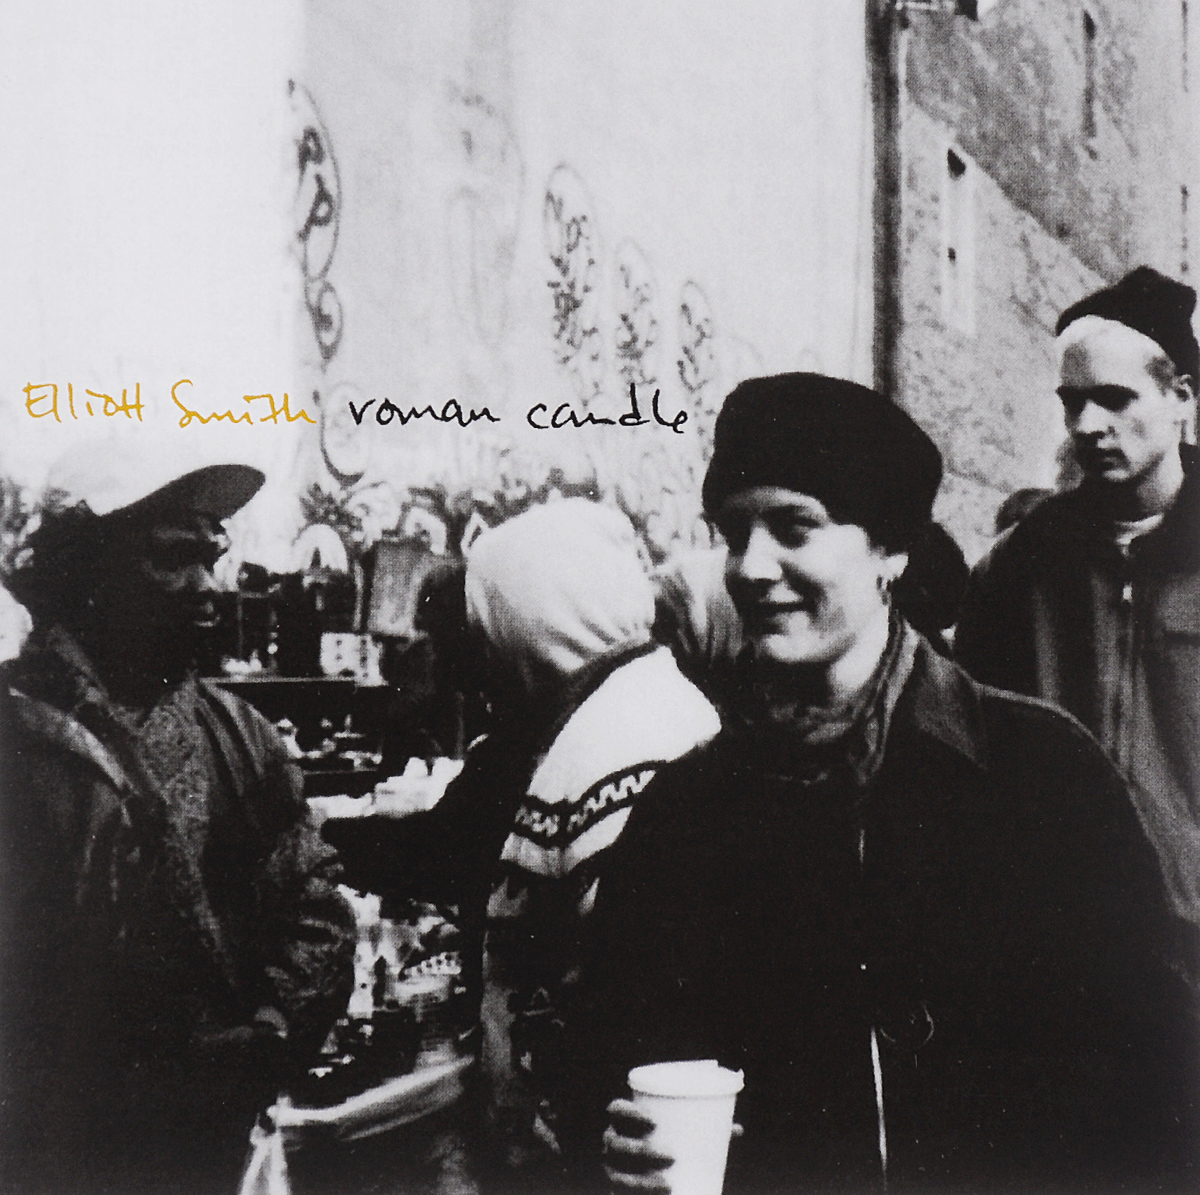 Эллиот Смит Elliott Smith. Roman Candle elliott smith elliott smith from a basement on the hill 2 lp